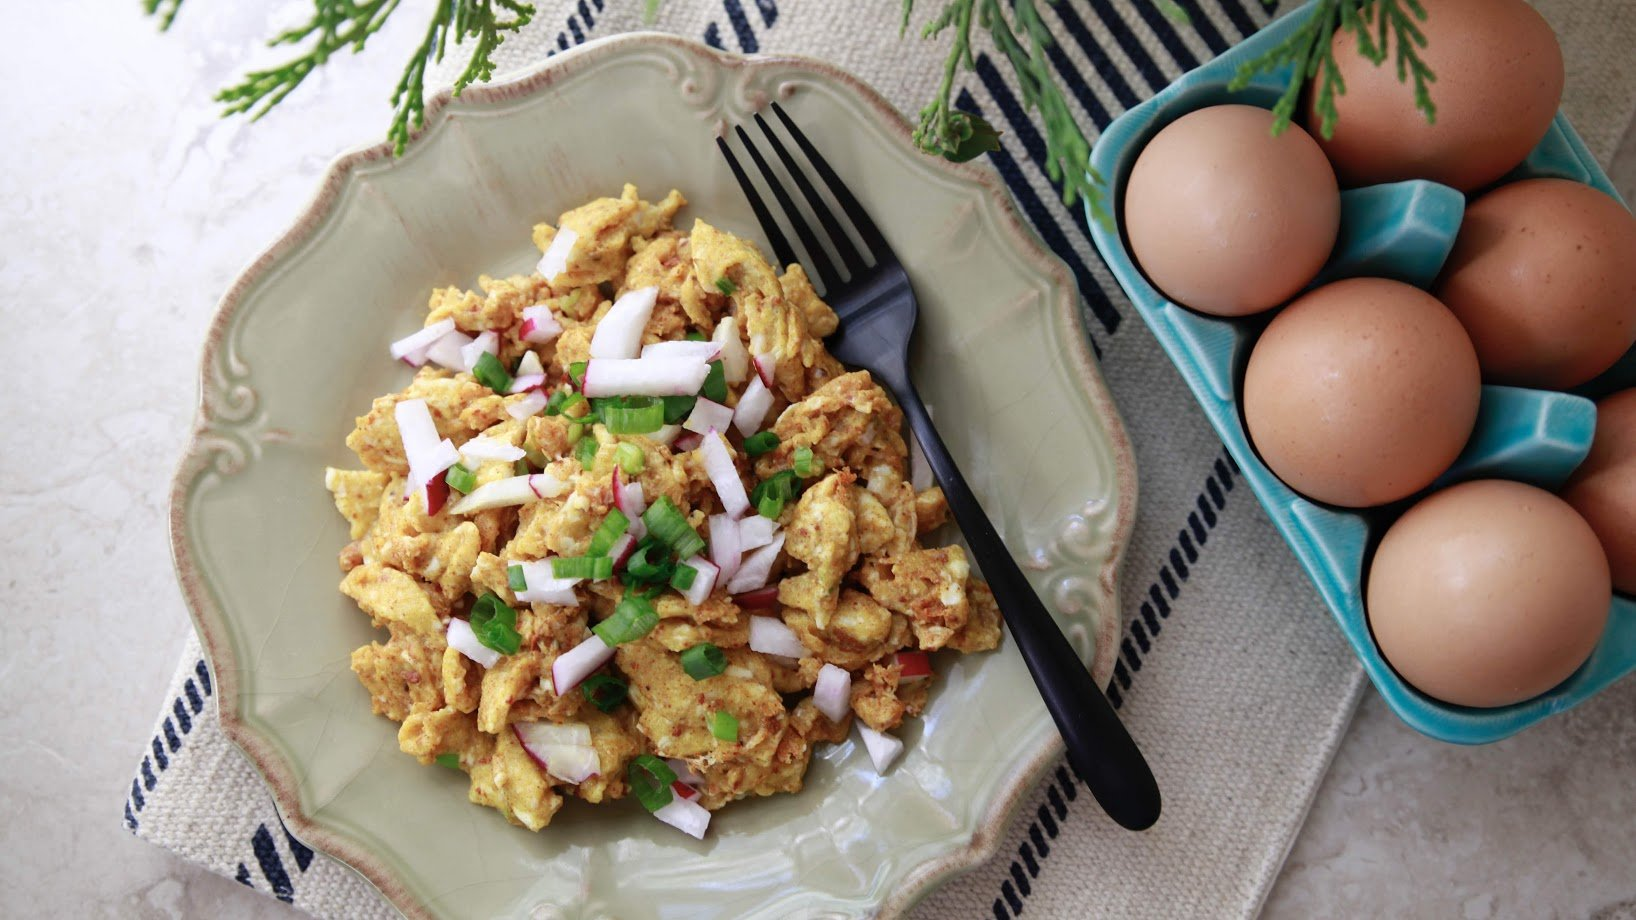 Turmeric Breakfast Scramble